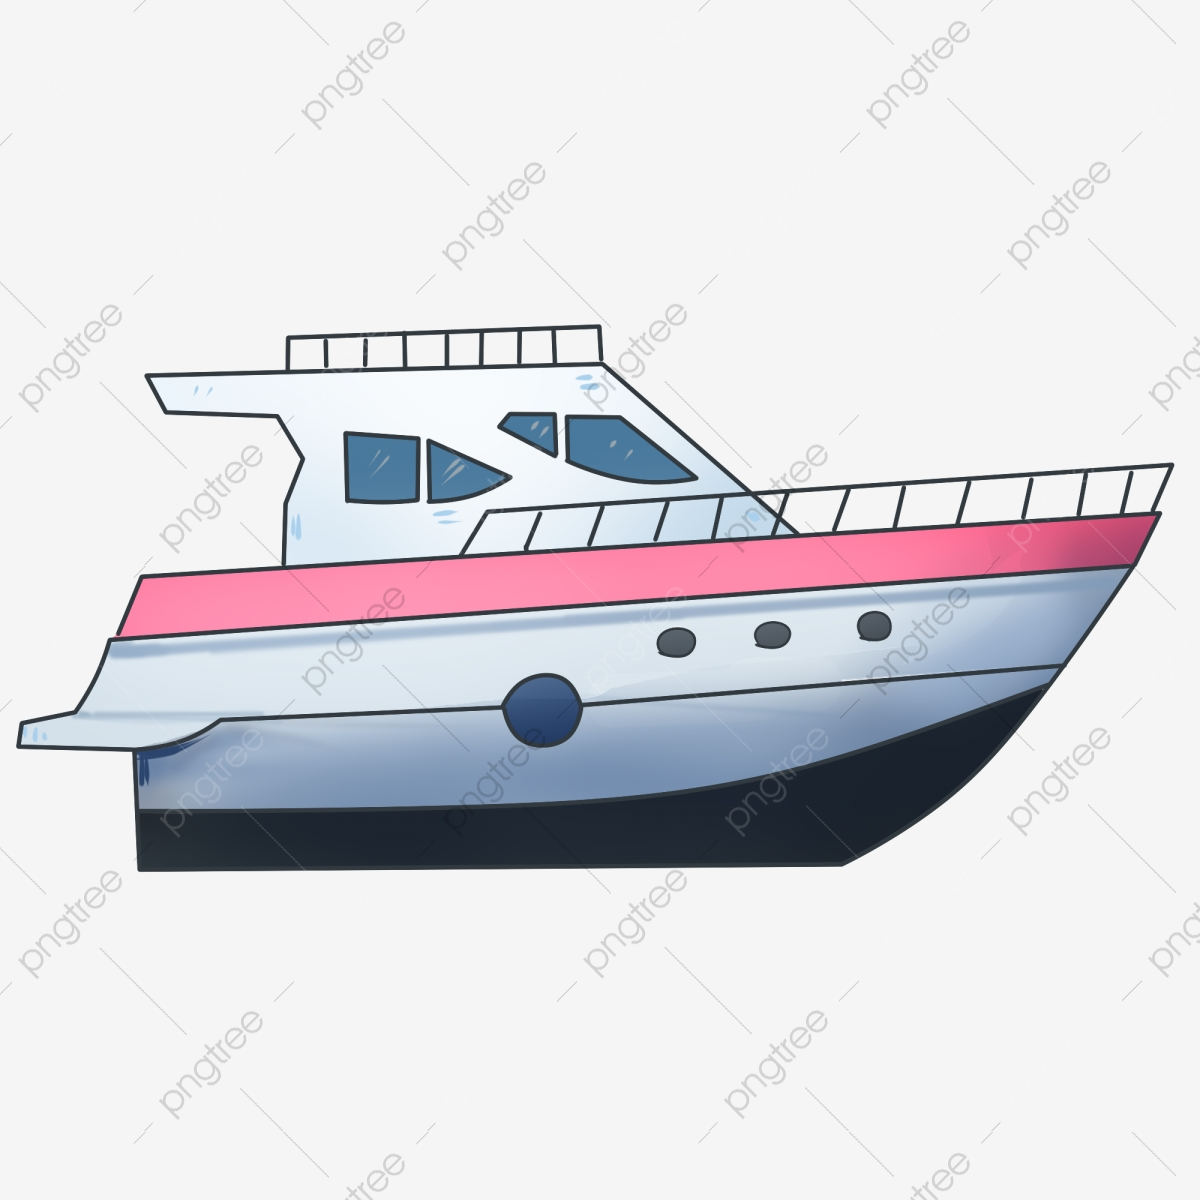 graphic free download A boat illustration sea. Yacht clipart river cruise